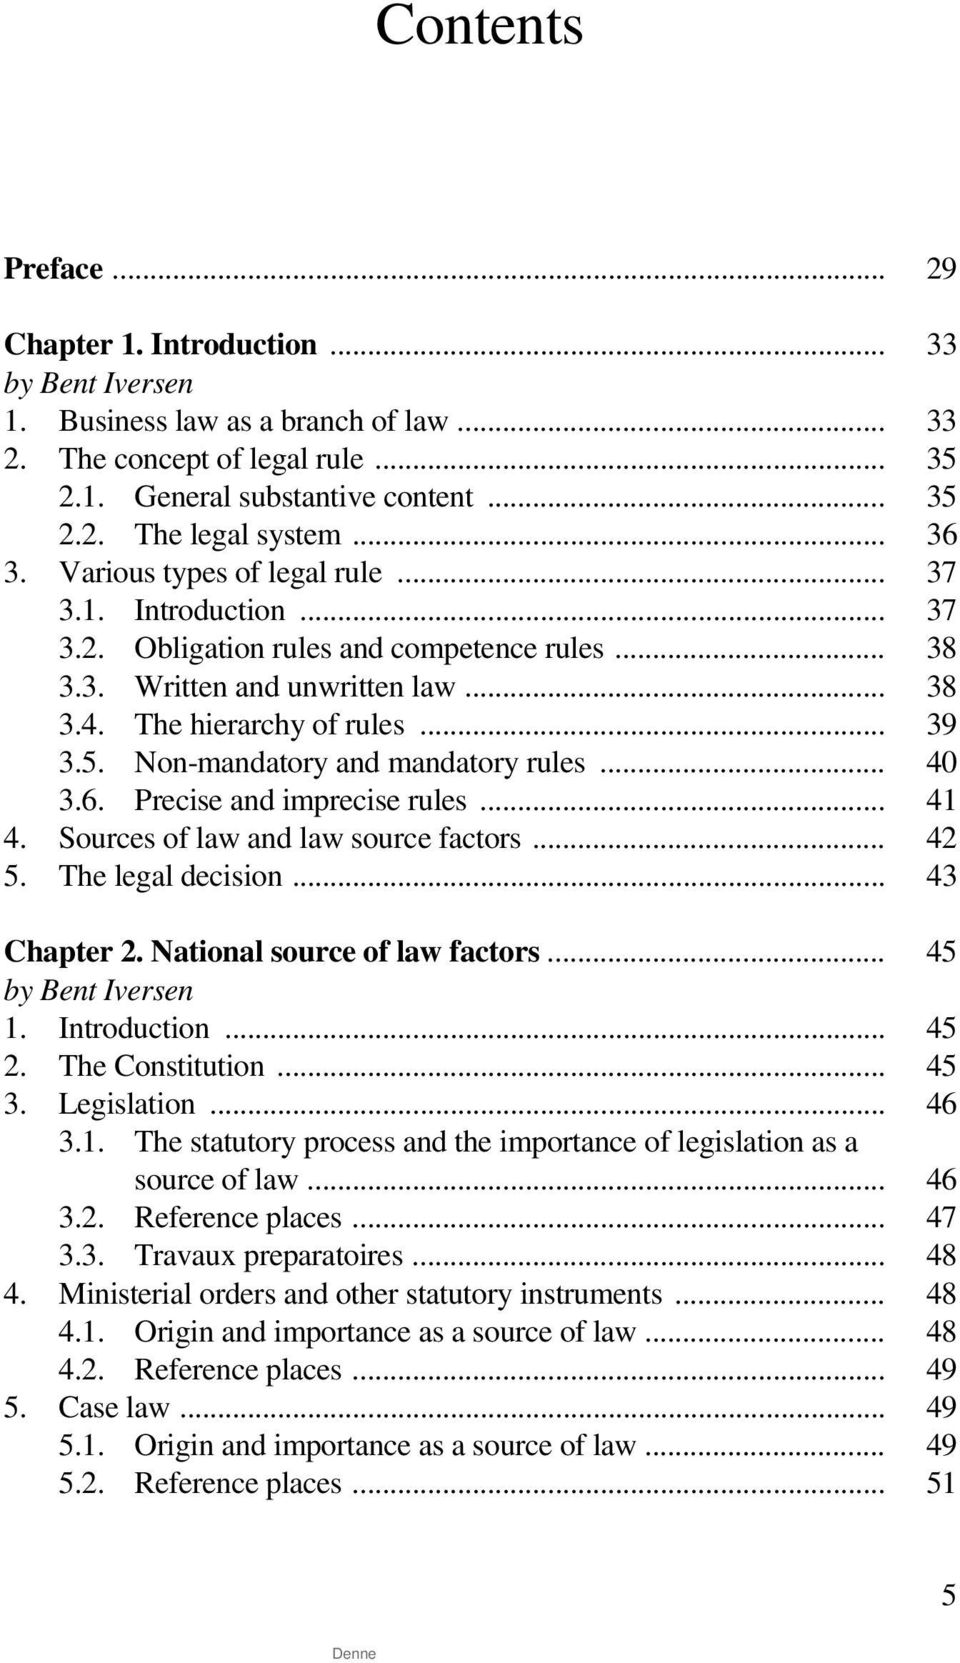 Non-mandatory and mandatory rules... 40 3.6. Precise and imprecise rules... 41 4. Sources of law and law source factors... 42 5. The legal decision... 43 Chapter 2. National source of law factors.